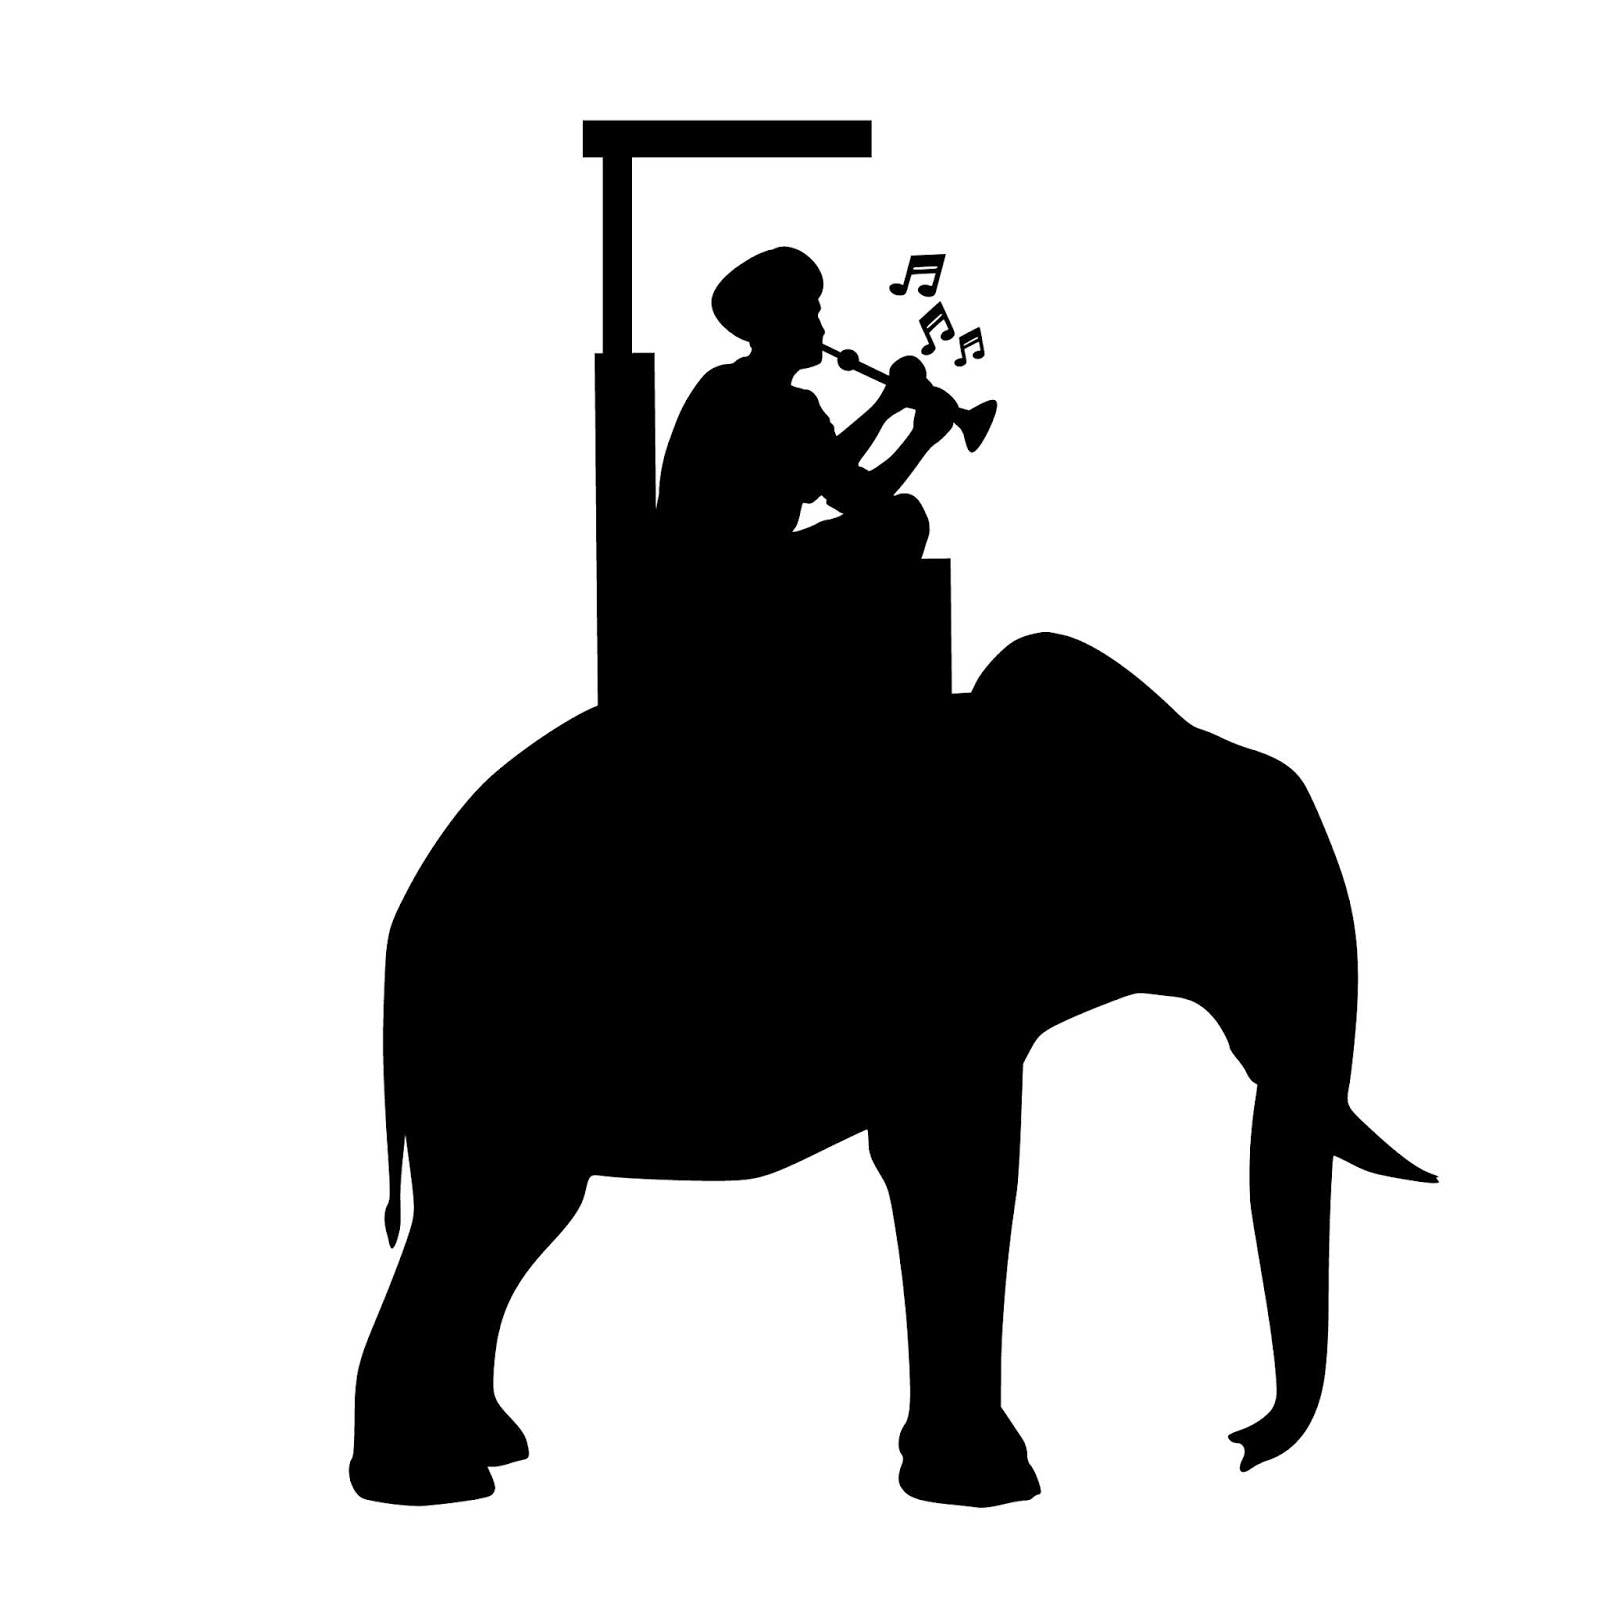 elephant, riding, man, Silhouette, asia, cambodia, cultural, india, indonesian, elephant keeper, people, thailand, vietnamese, tusks, trunk, music,